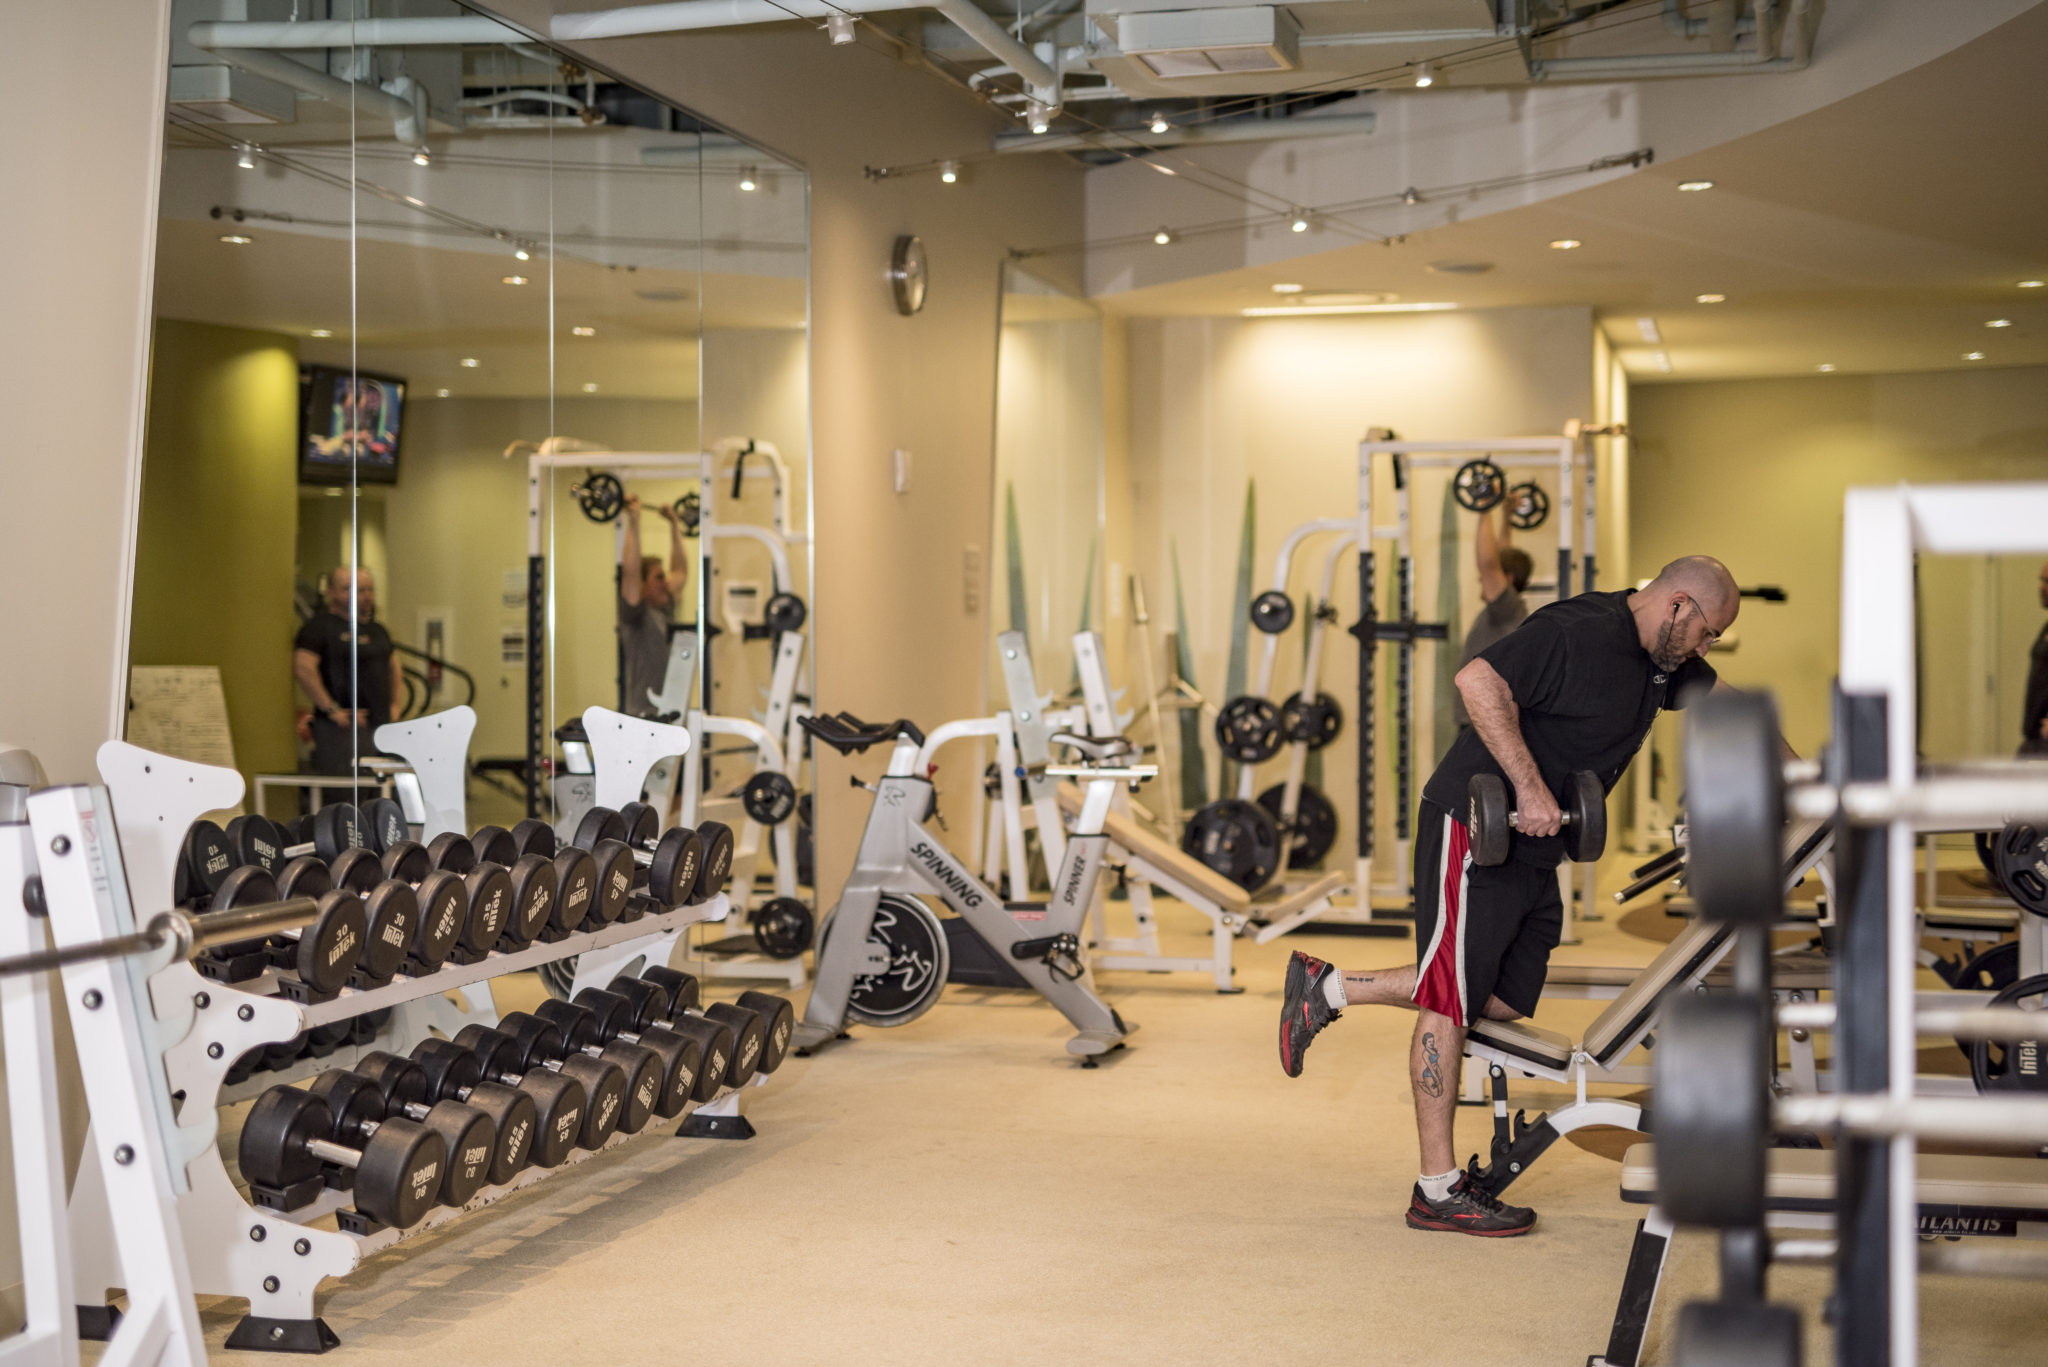 Weight training is an essential part of most fitness regimens. (Photo by Jim Coarse)